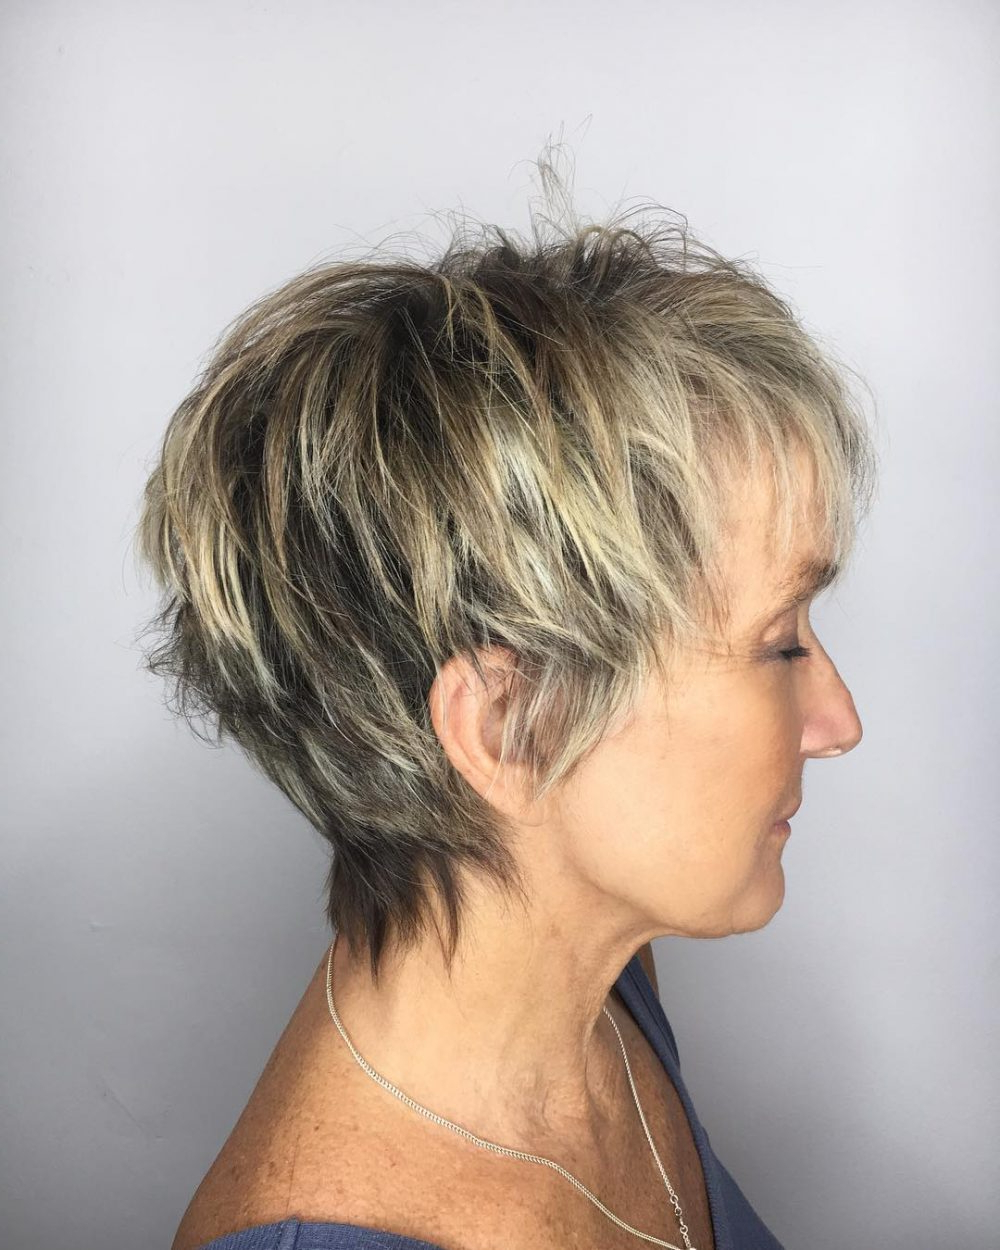 Top 22 Choppy Hairstyles You'll See In 2018 Pertaining To Choppy Short Haircuts (View 7 of 25)